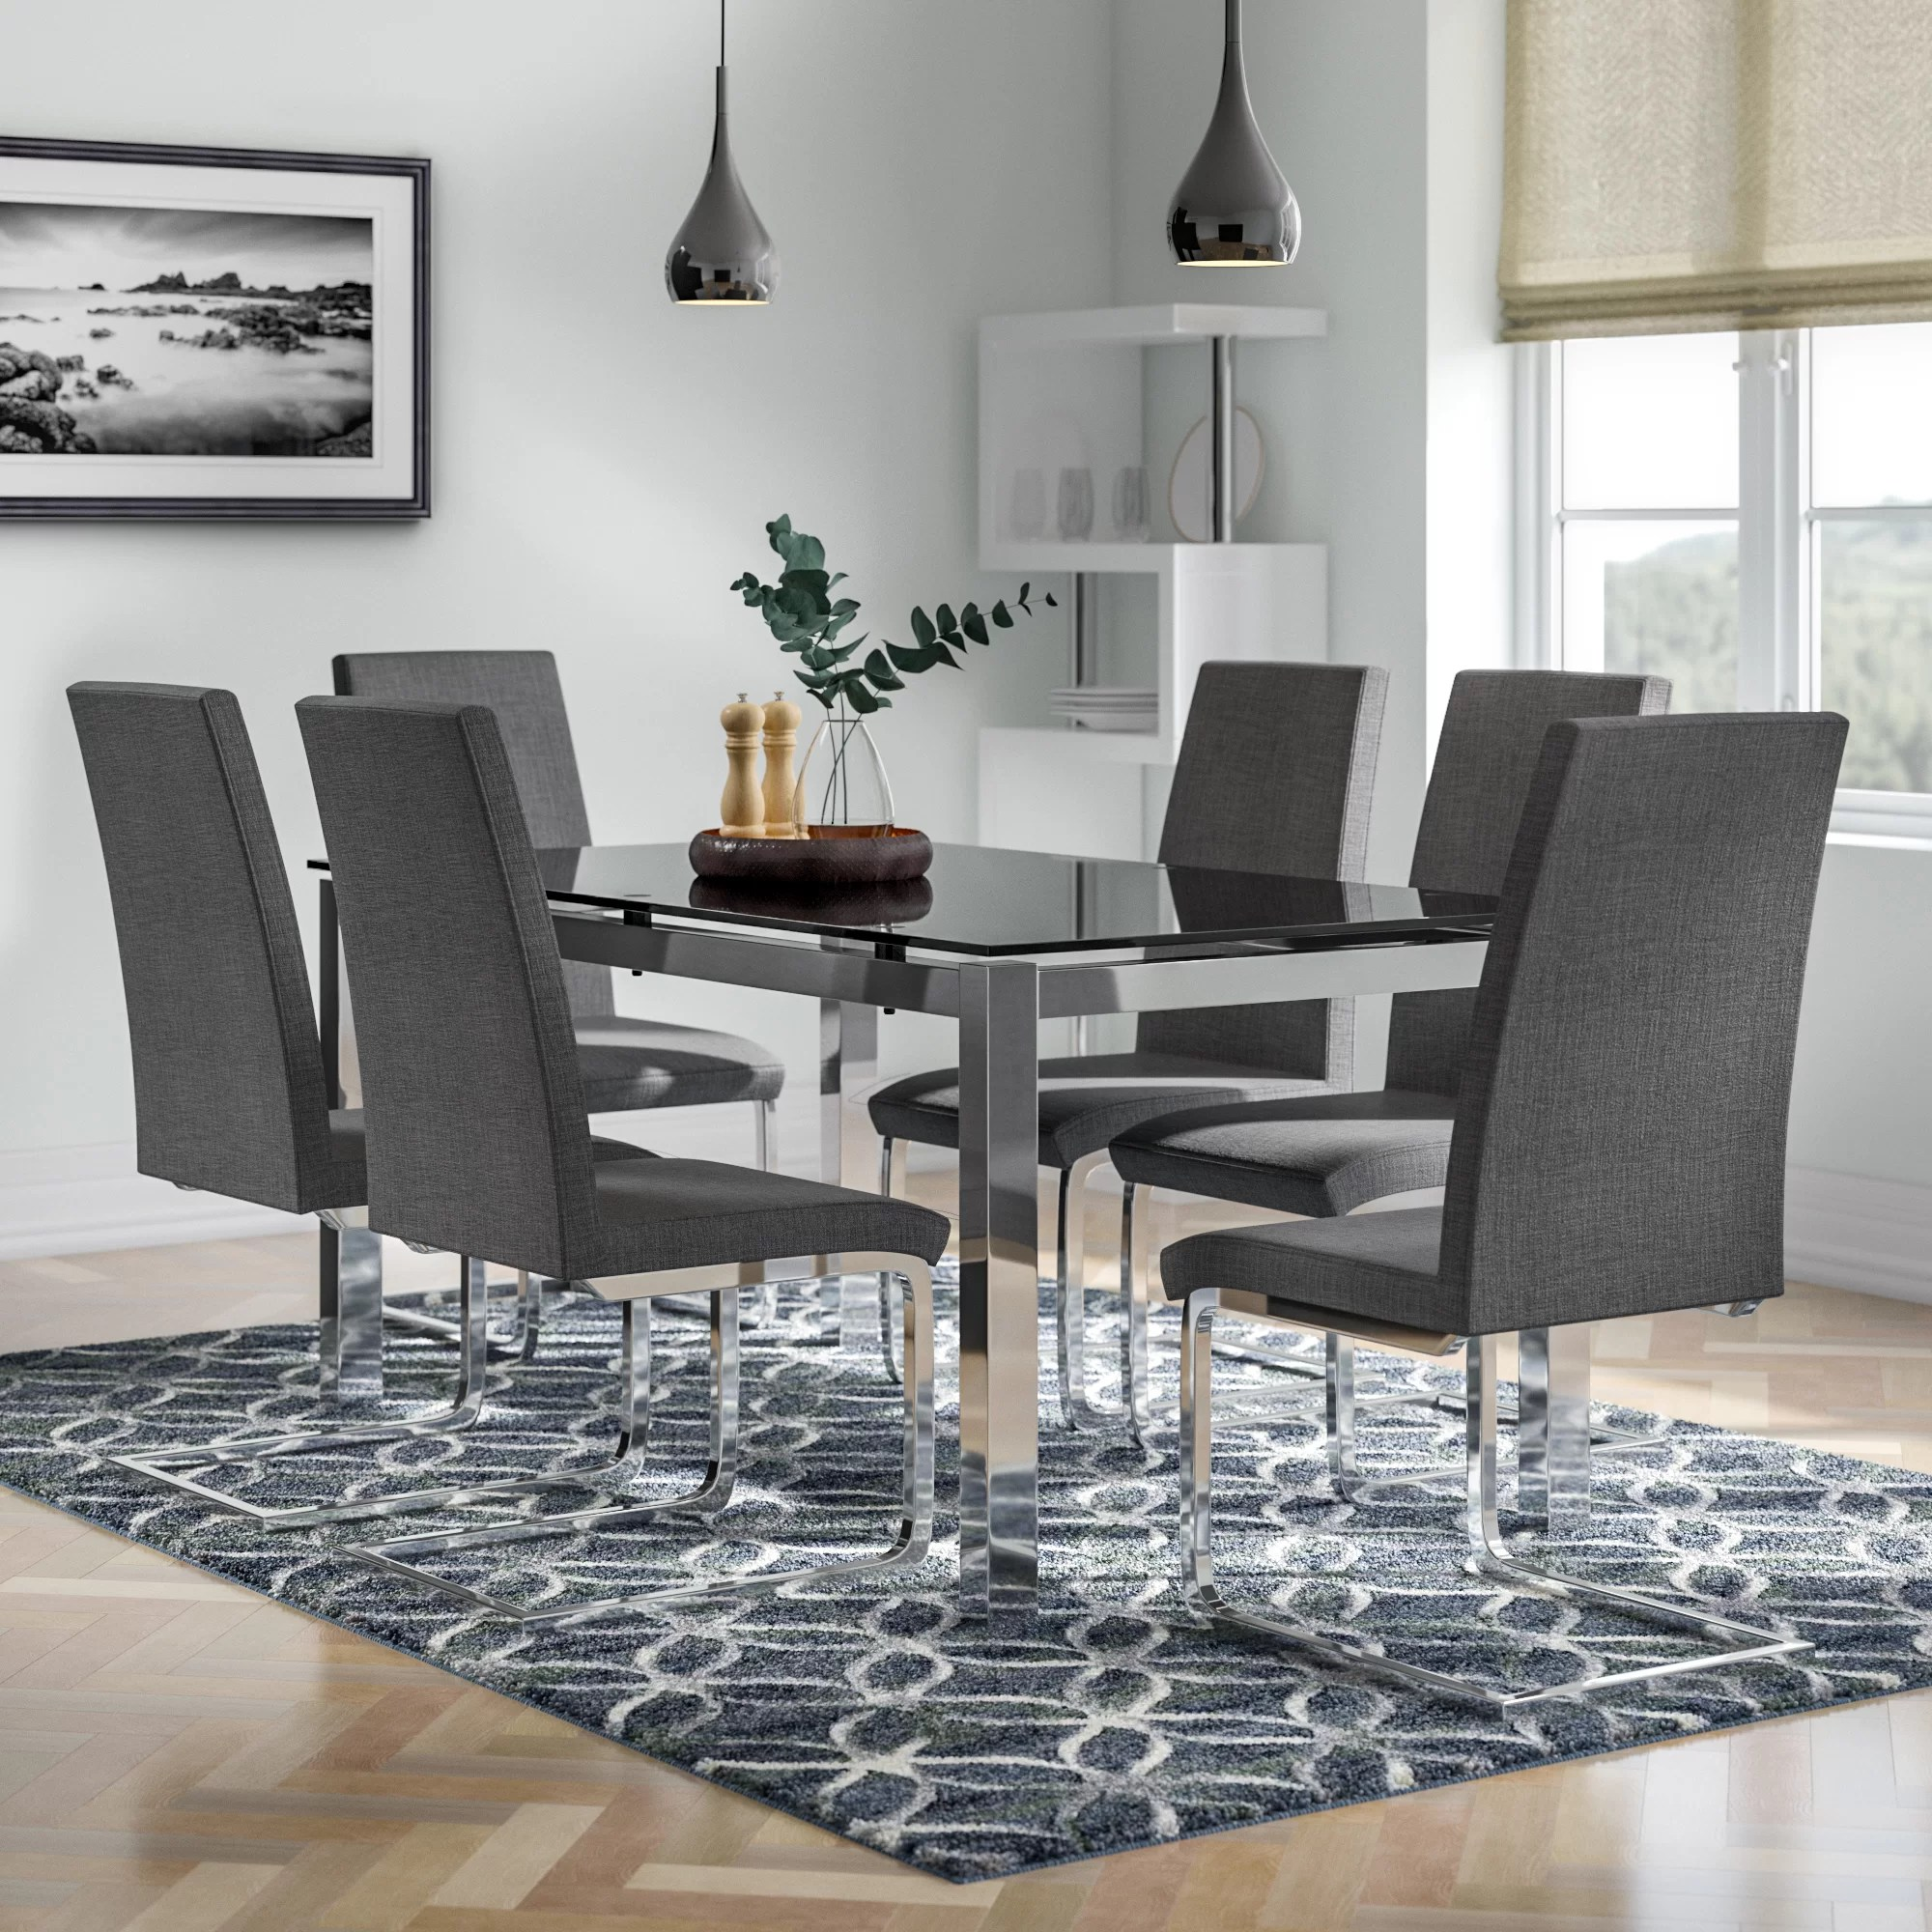 Dining Chair Set Of 6 Neville Dining Set With 6 Chairs